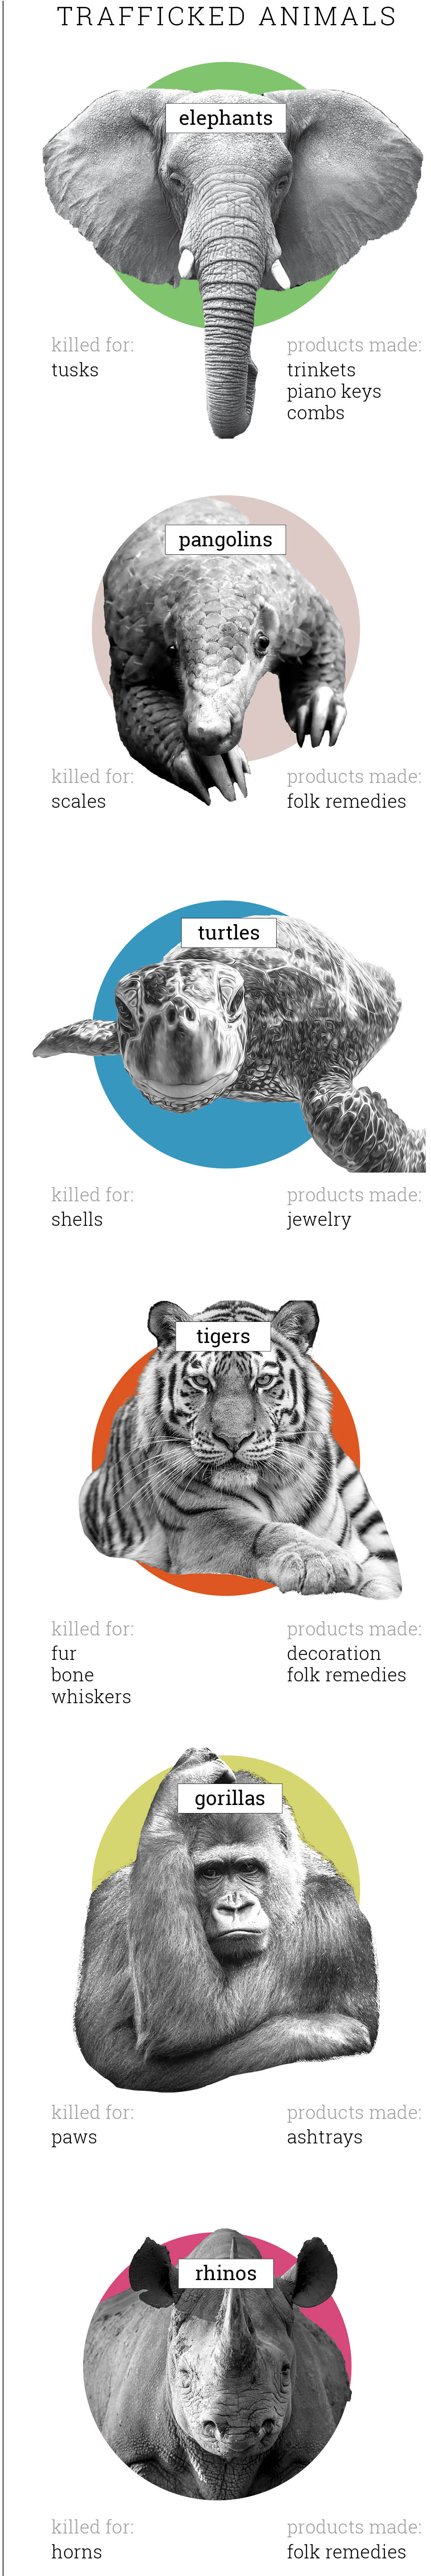 Graphic showing trafficked animals and the products they are killed for (State Dept./Julia Maruszewski; Images © AP Images, Shutterstock)